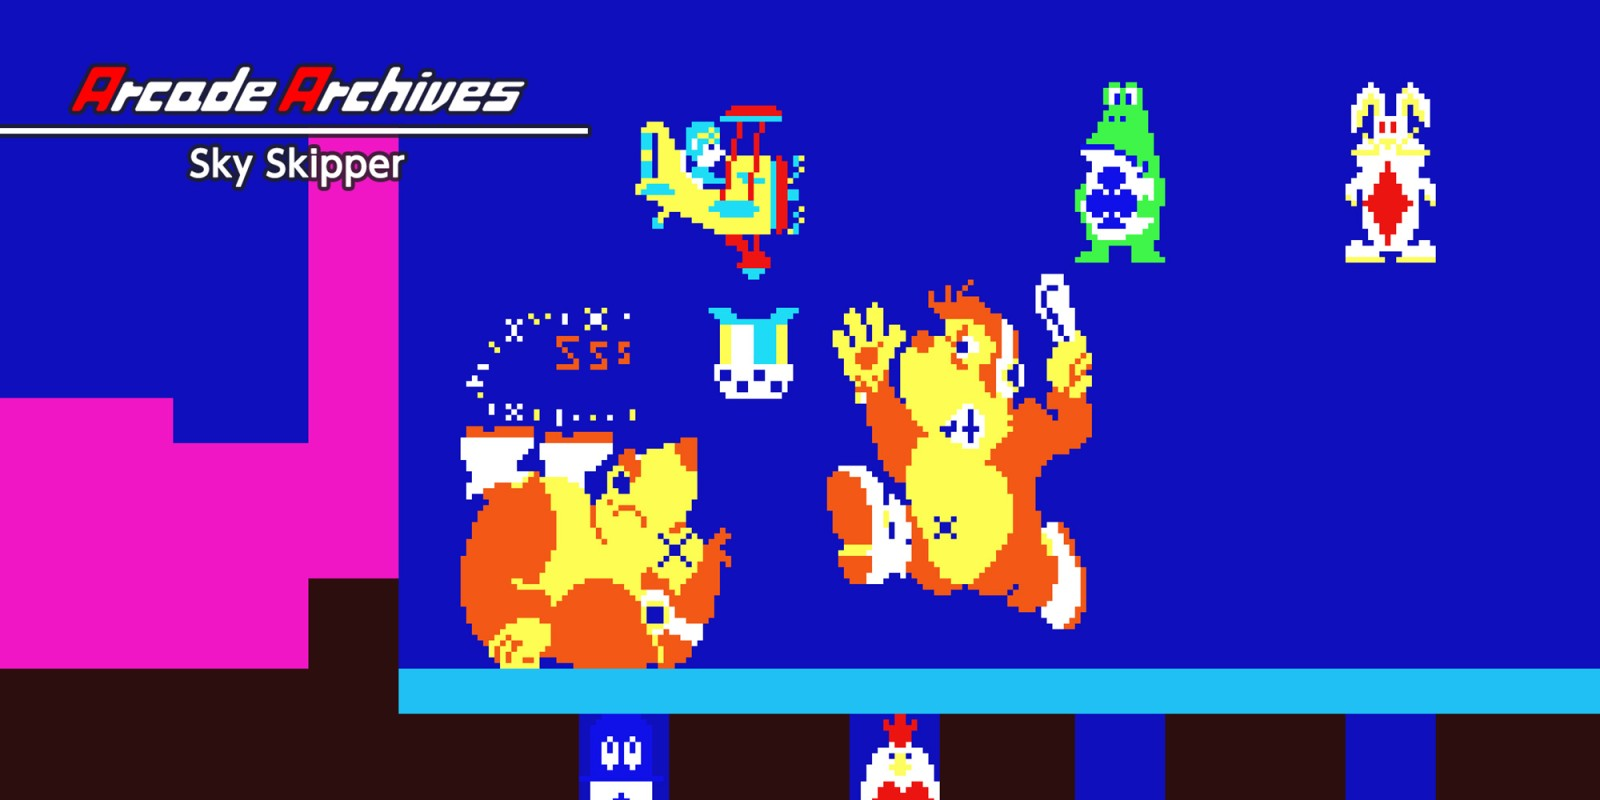 Arcade Archives Sky Skipper